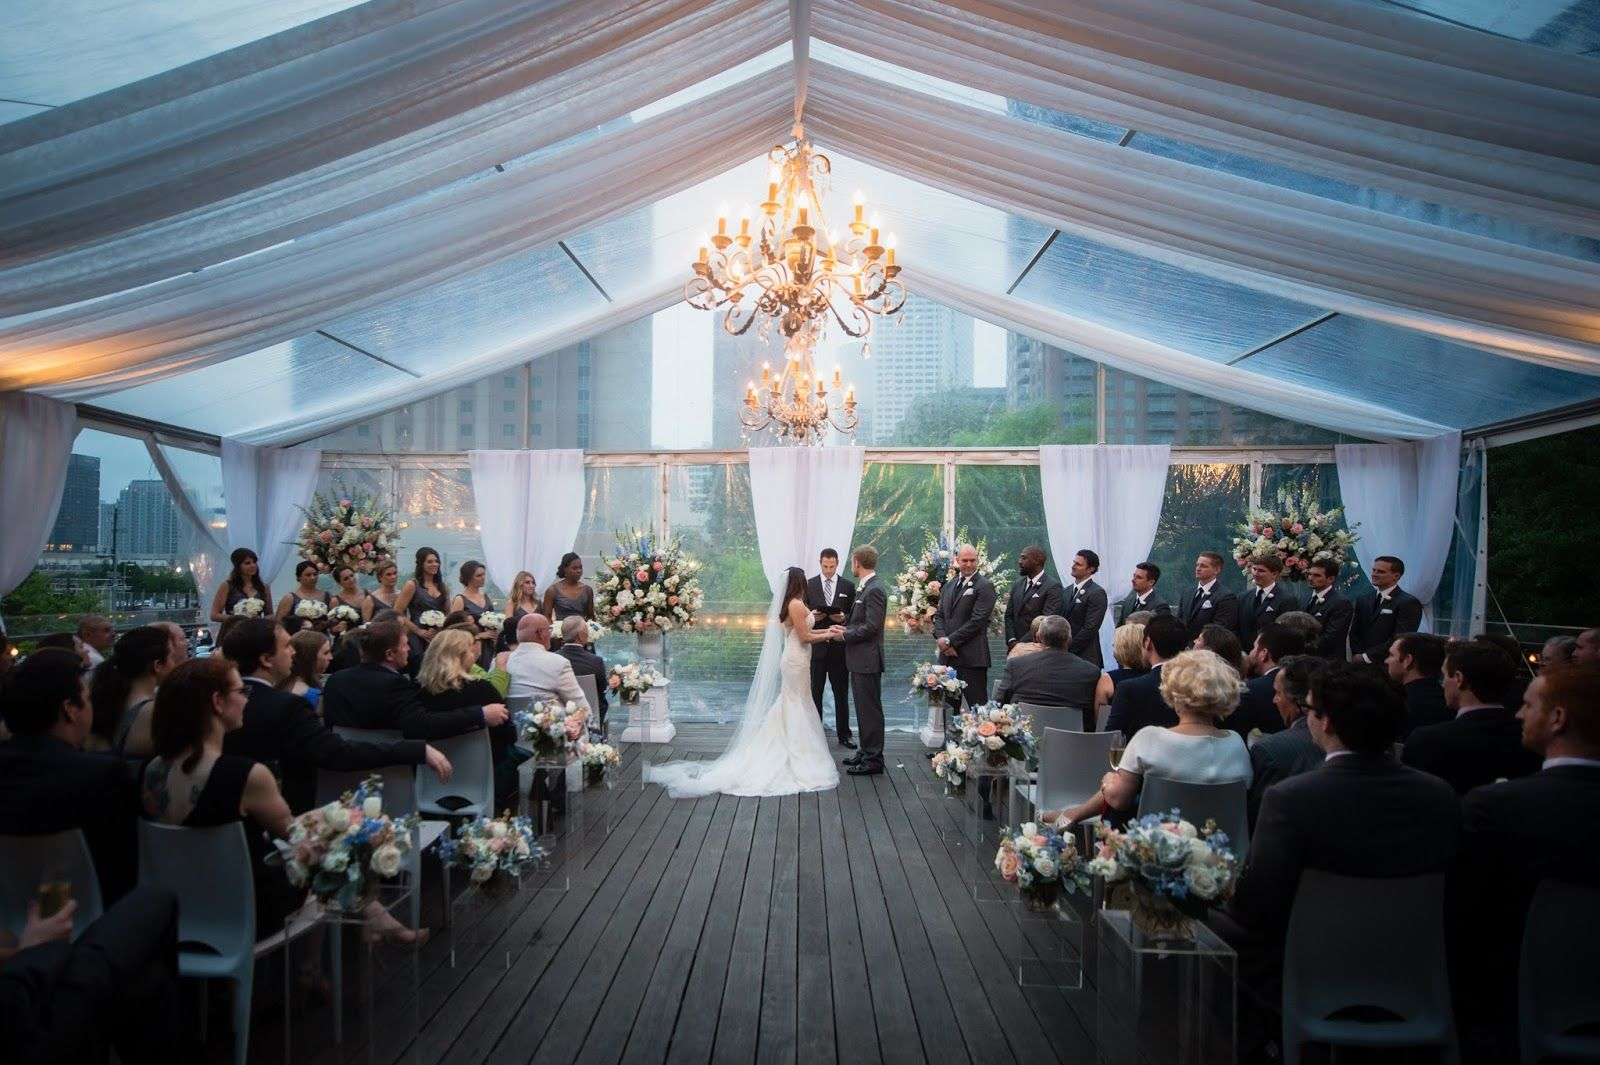 THE GROVE Wedding Venue in Discovery Green (not sure on